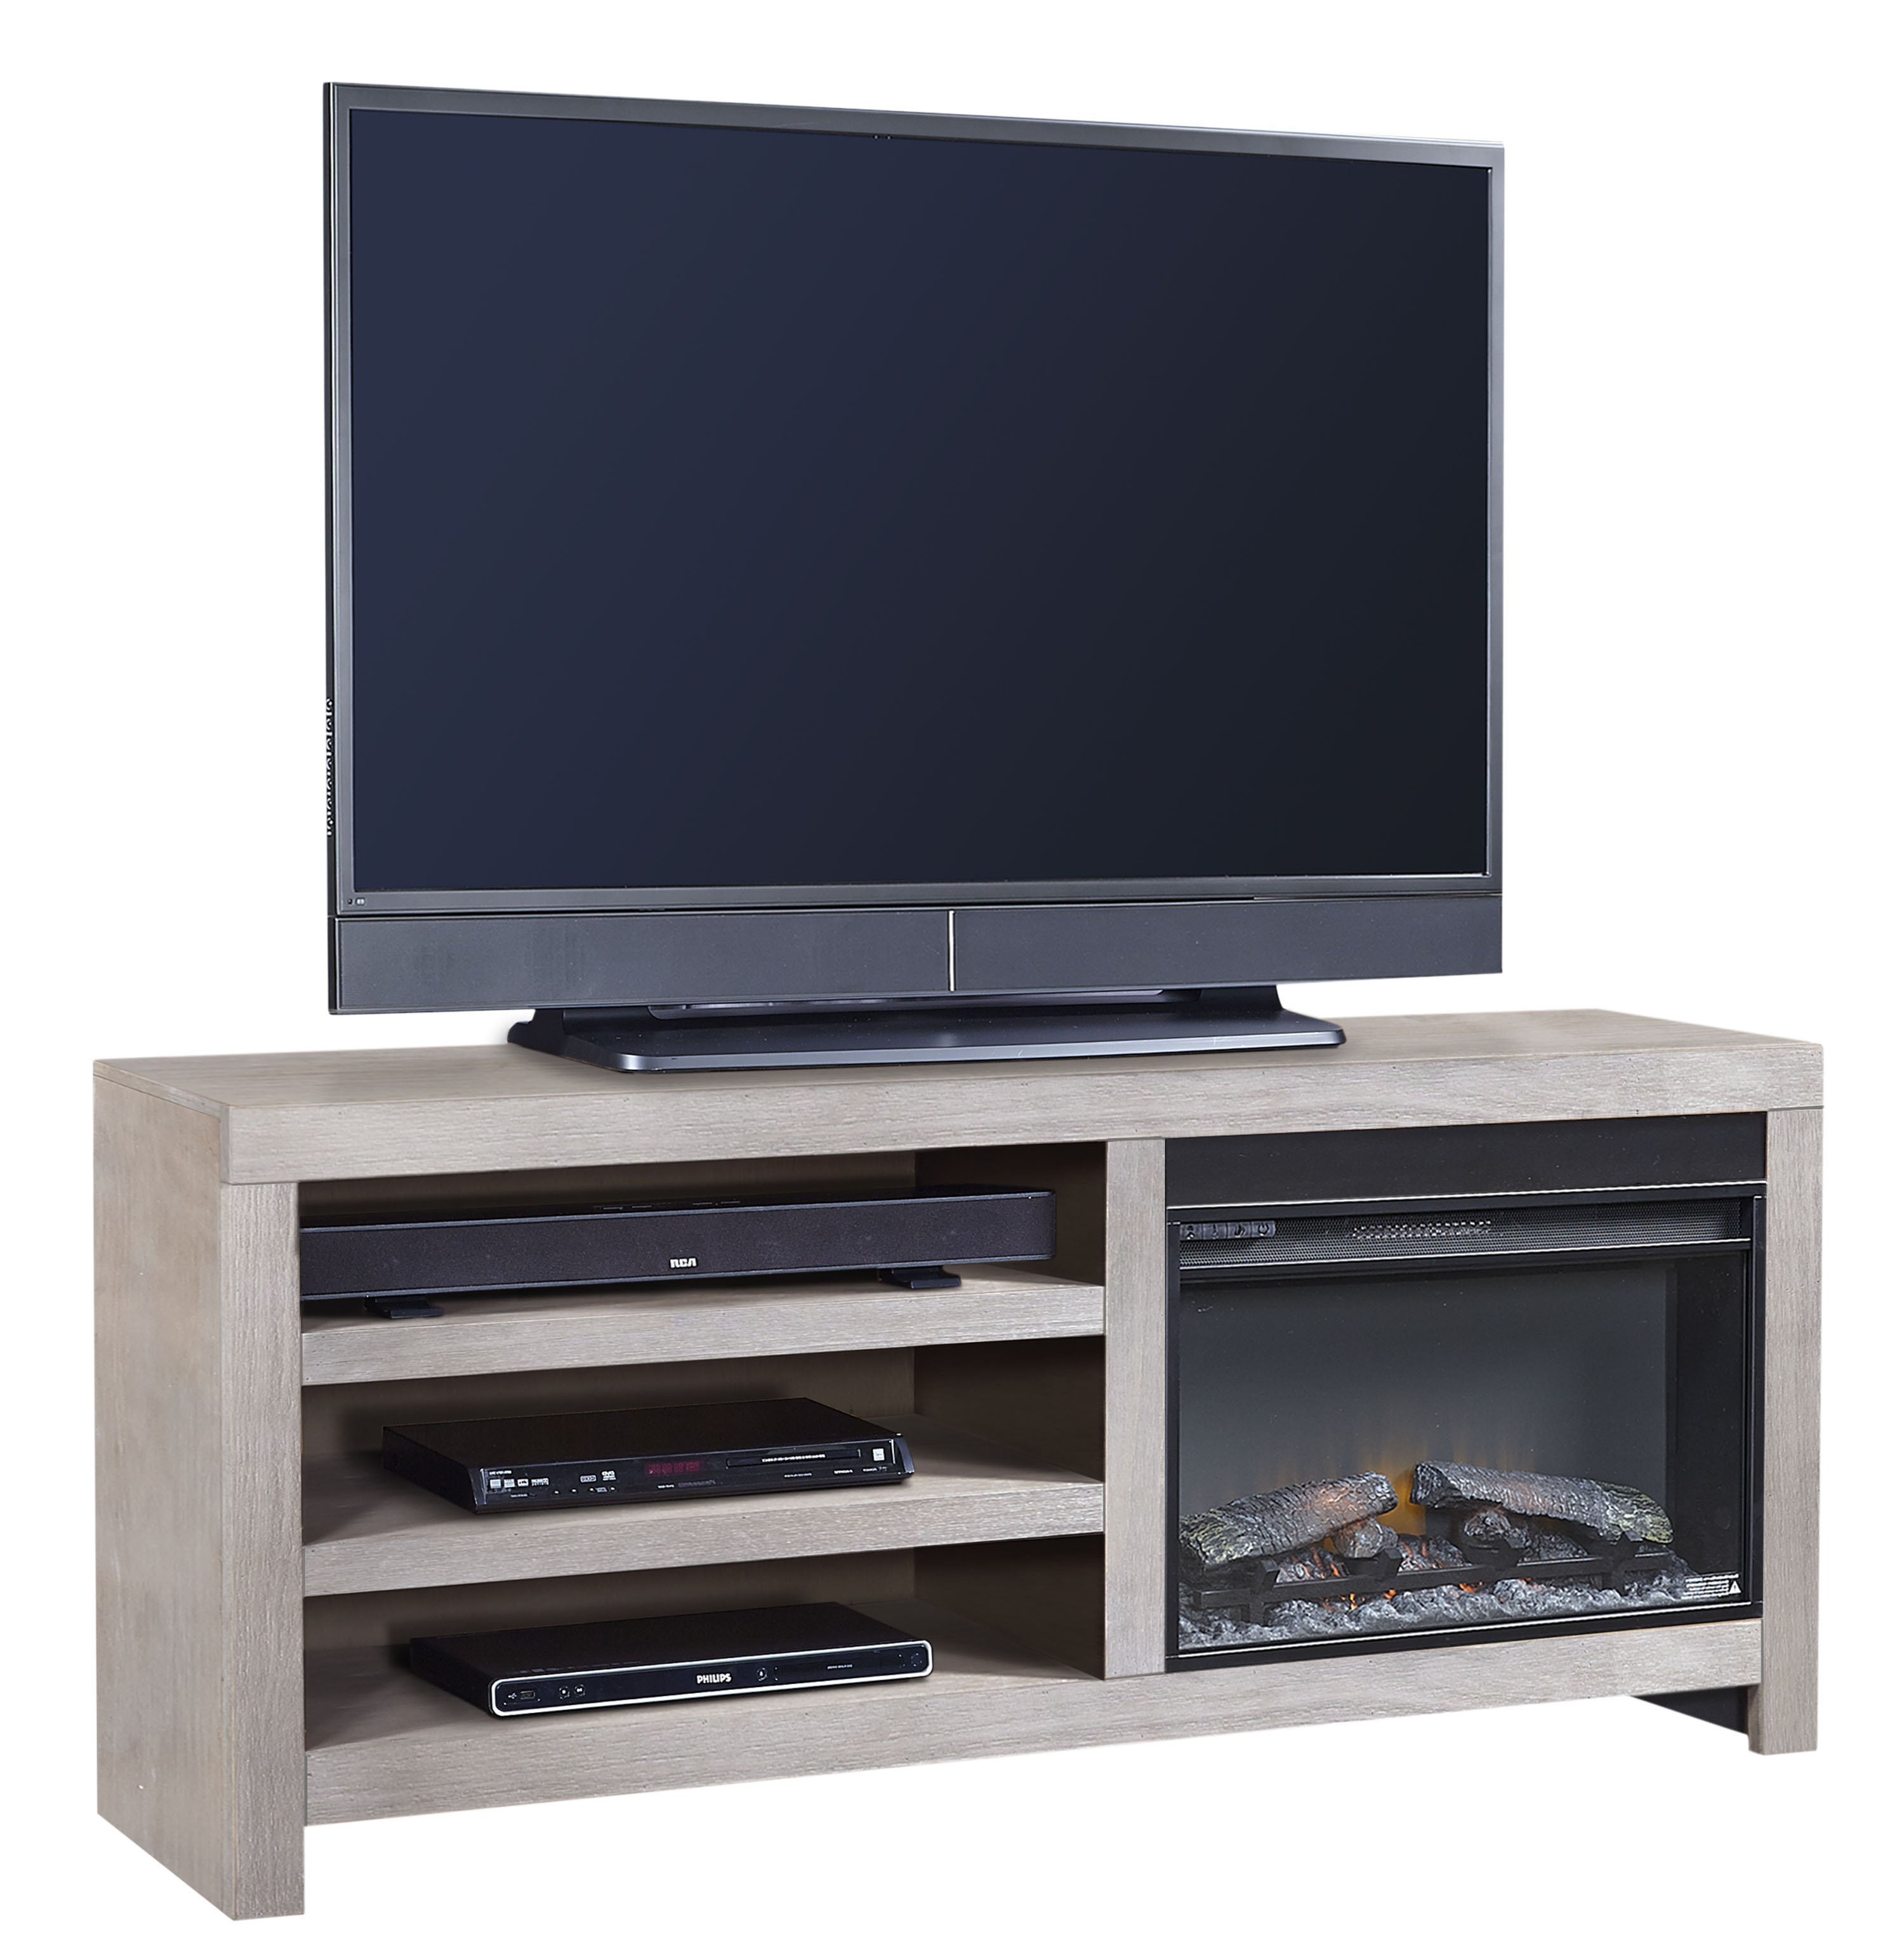 65 Inch Fireplace Console with 2 Shelves